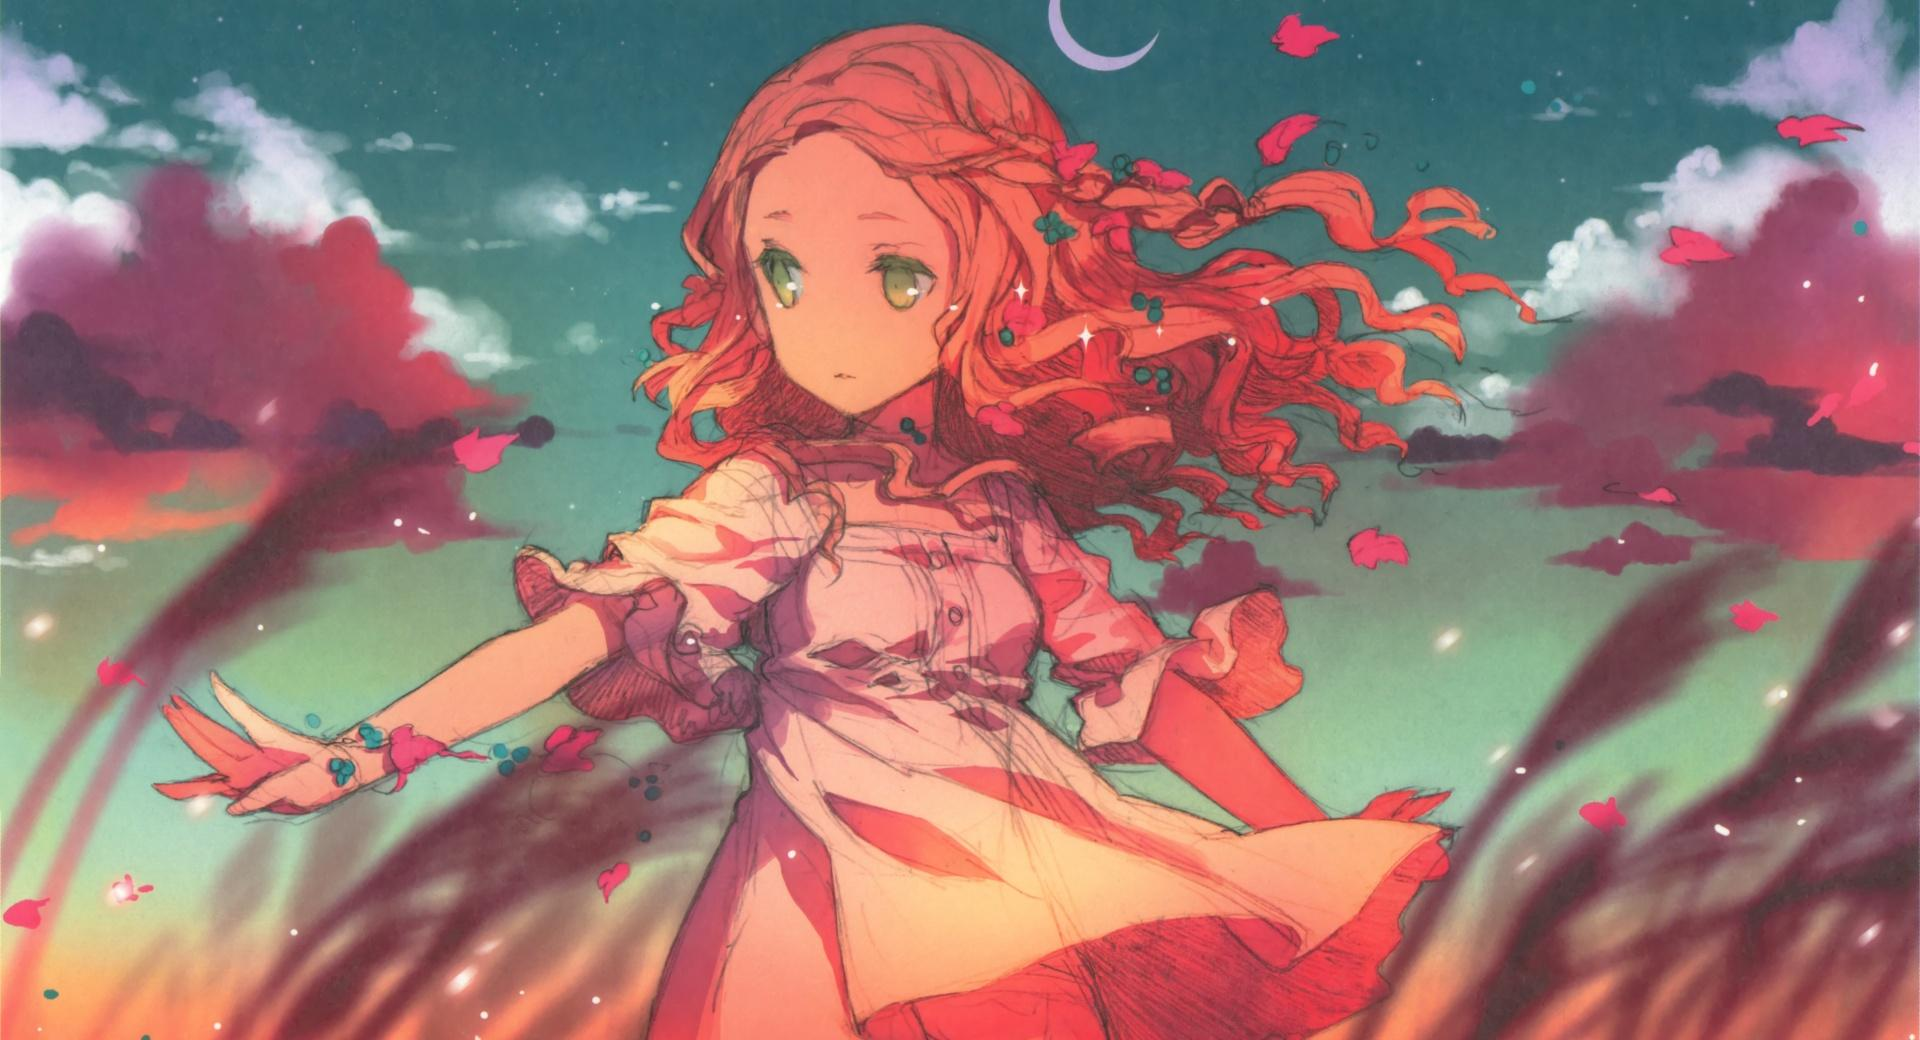 Anime Girl In The Wind wallpapers HD quality